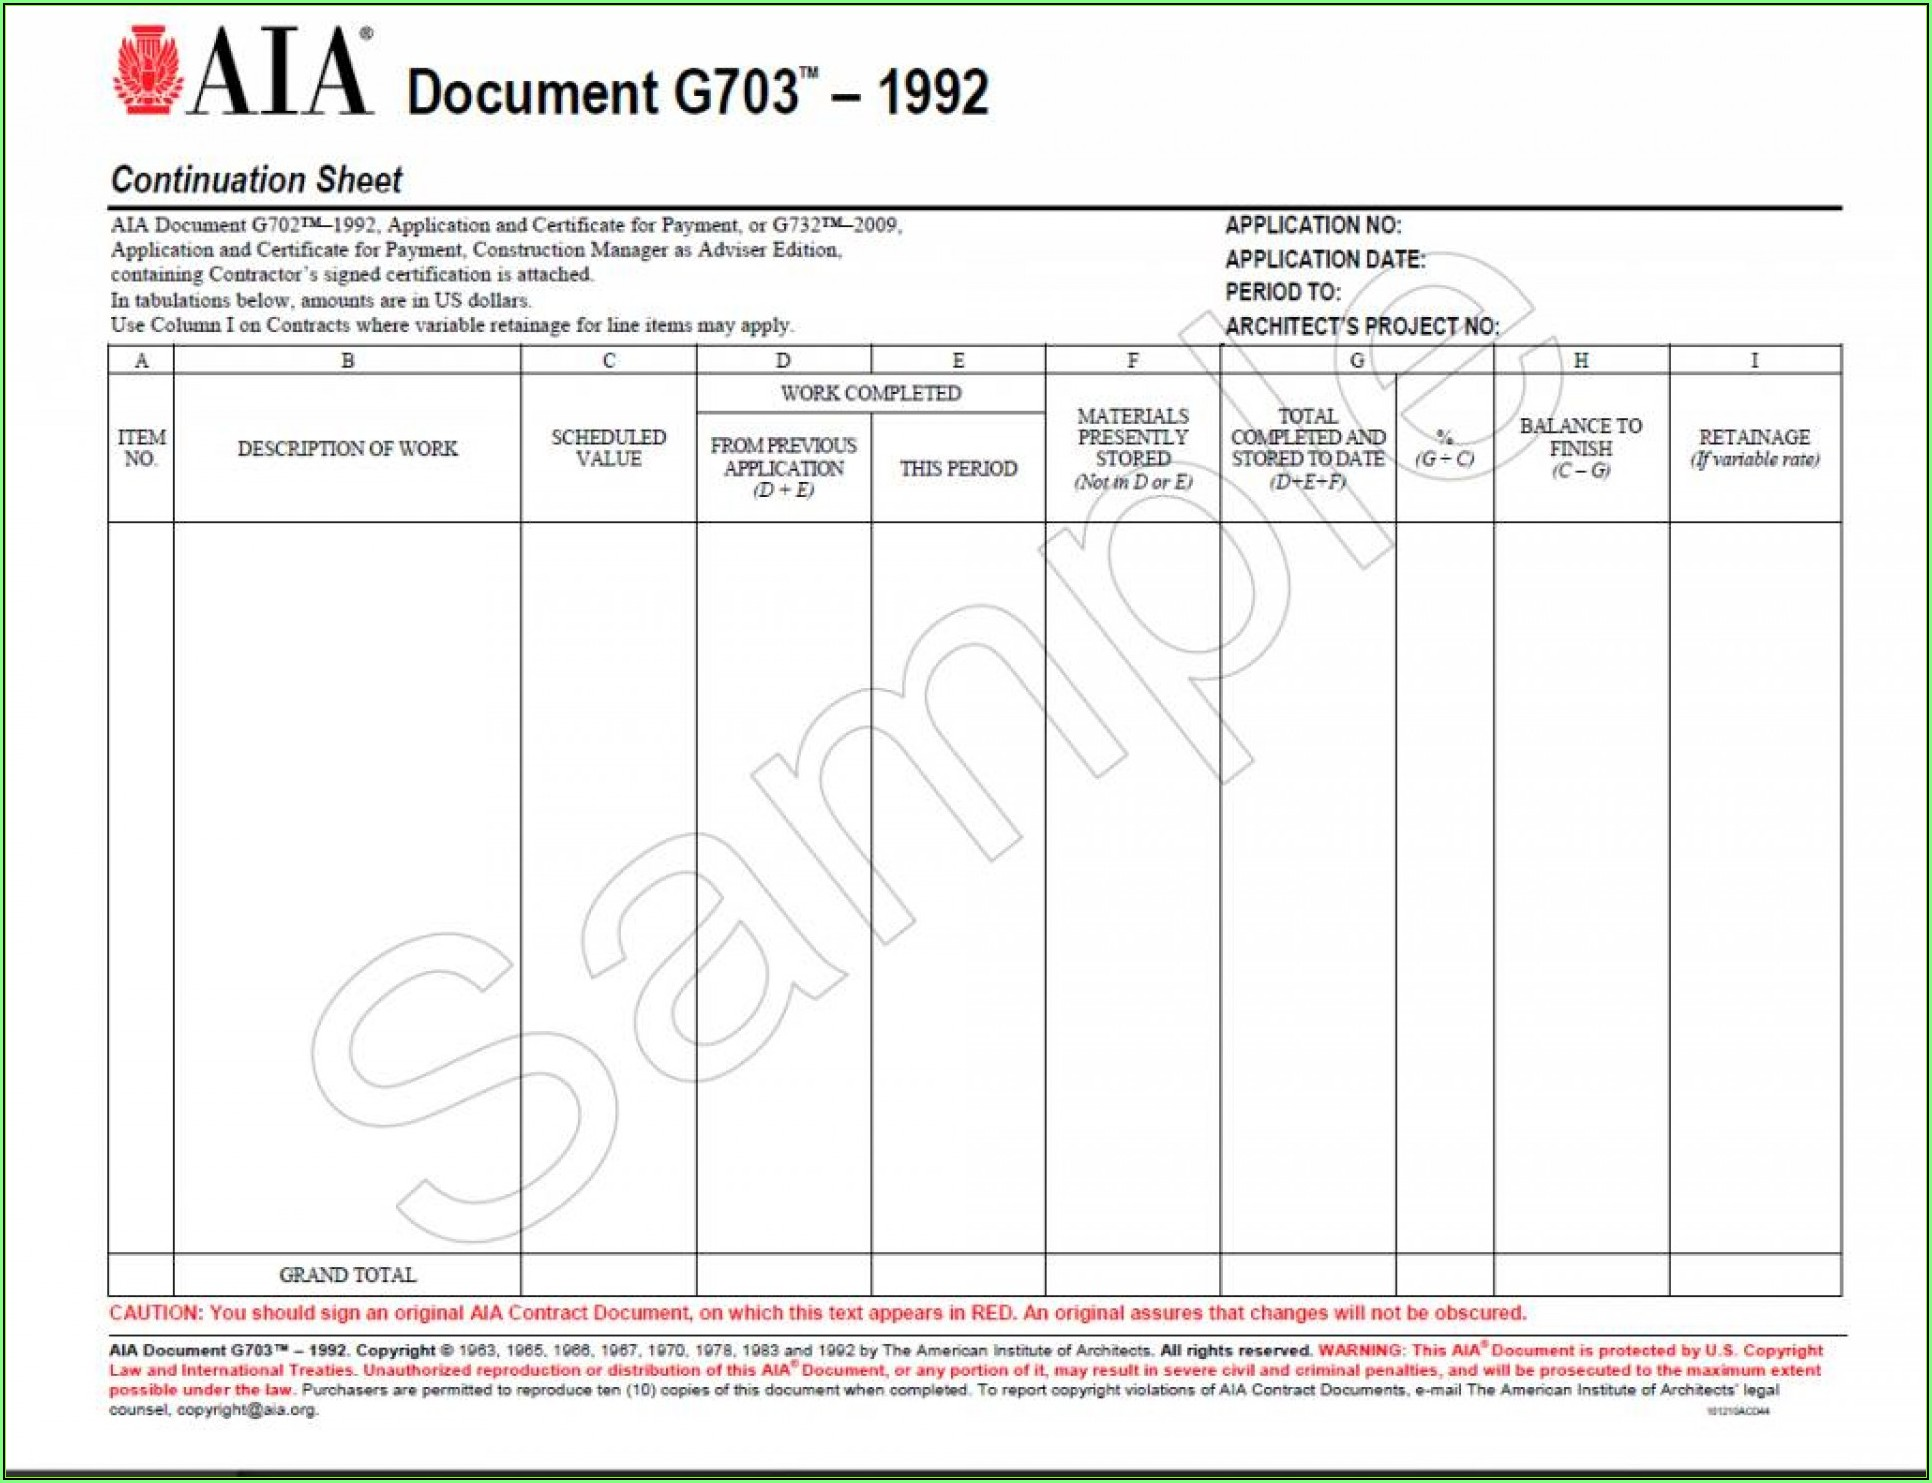 Aia Documents G702 And G703